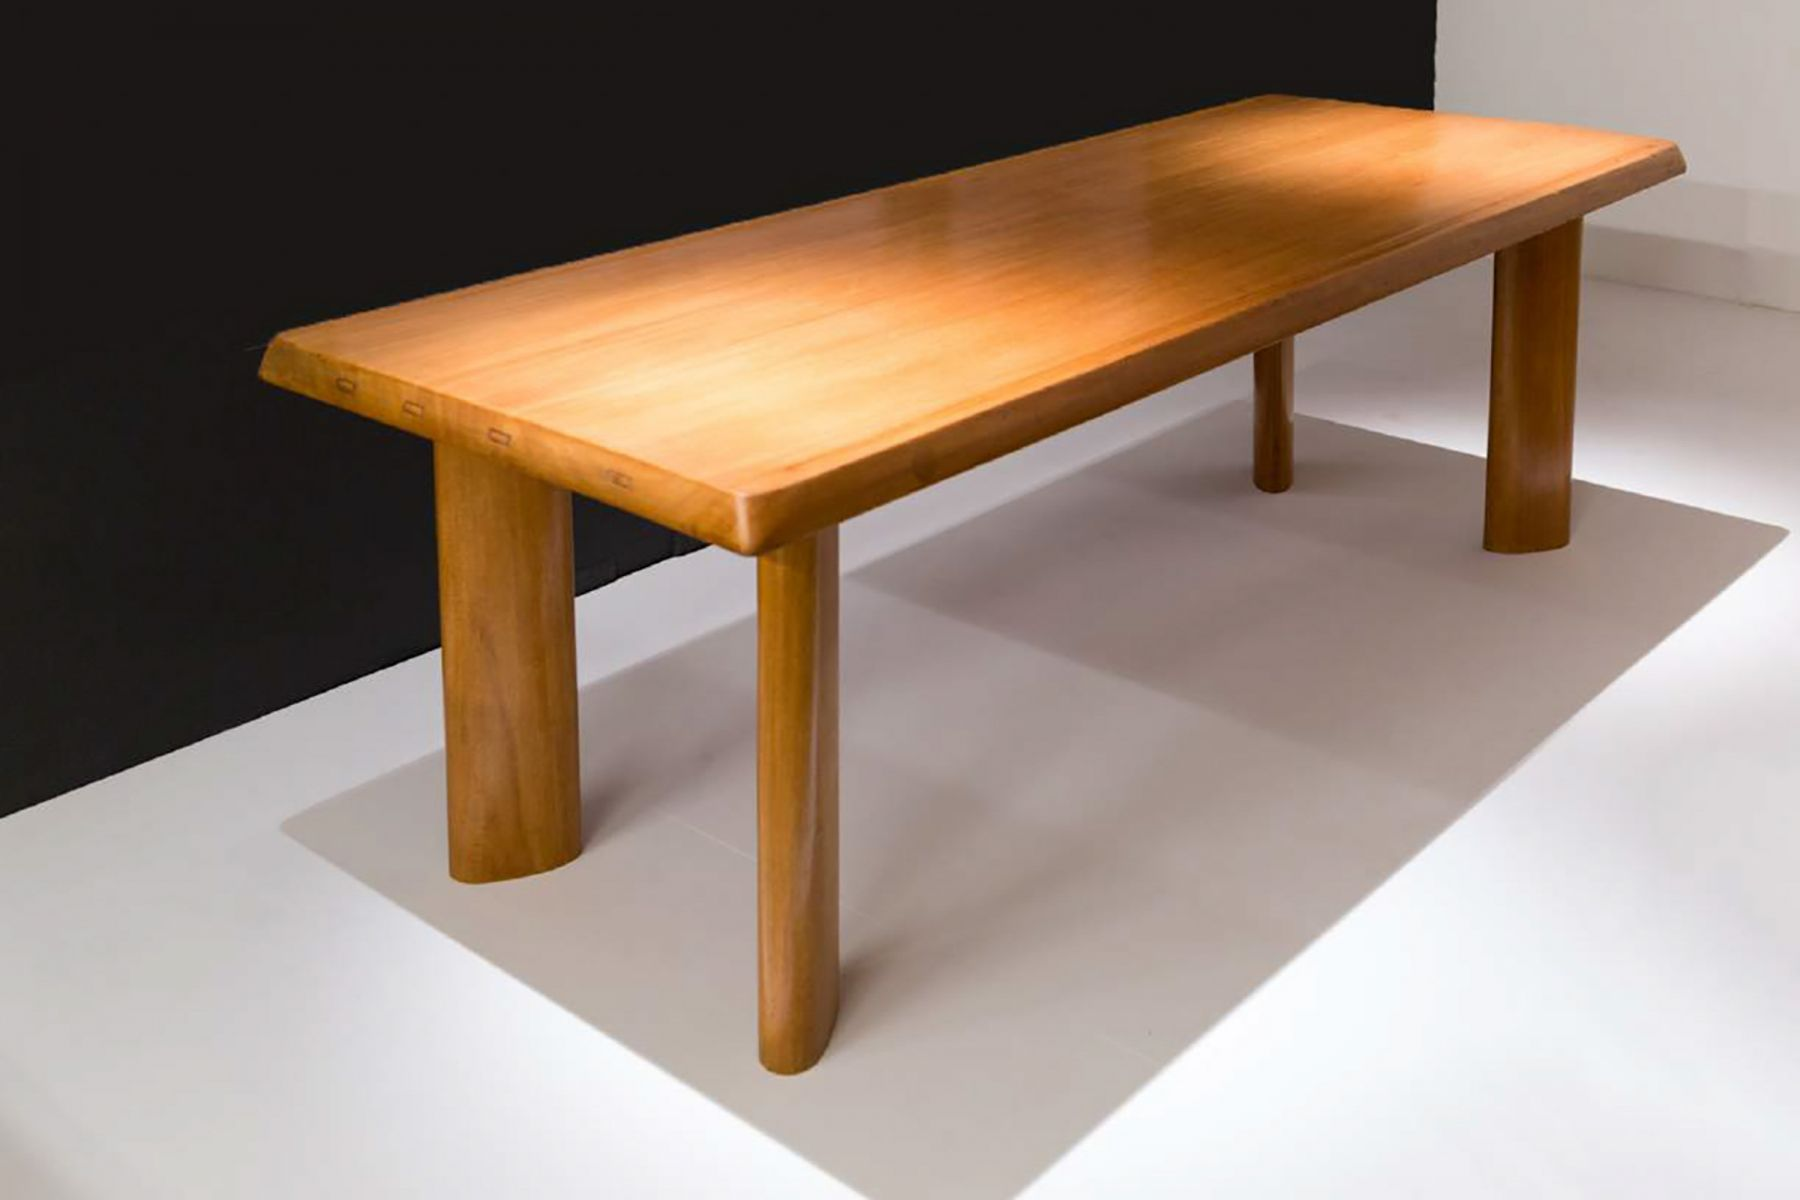 Charlotte Perriand Table de salle à manger à gorges